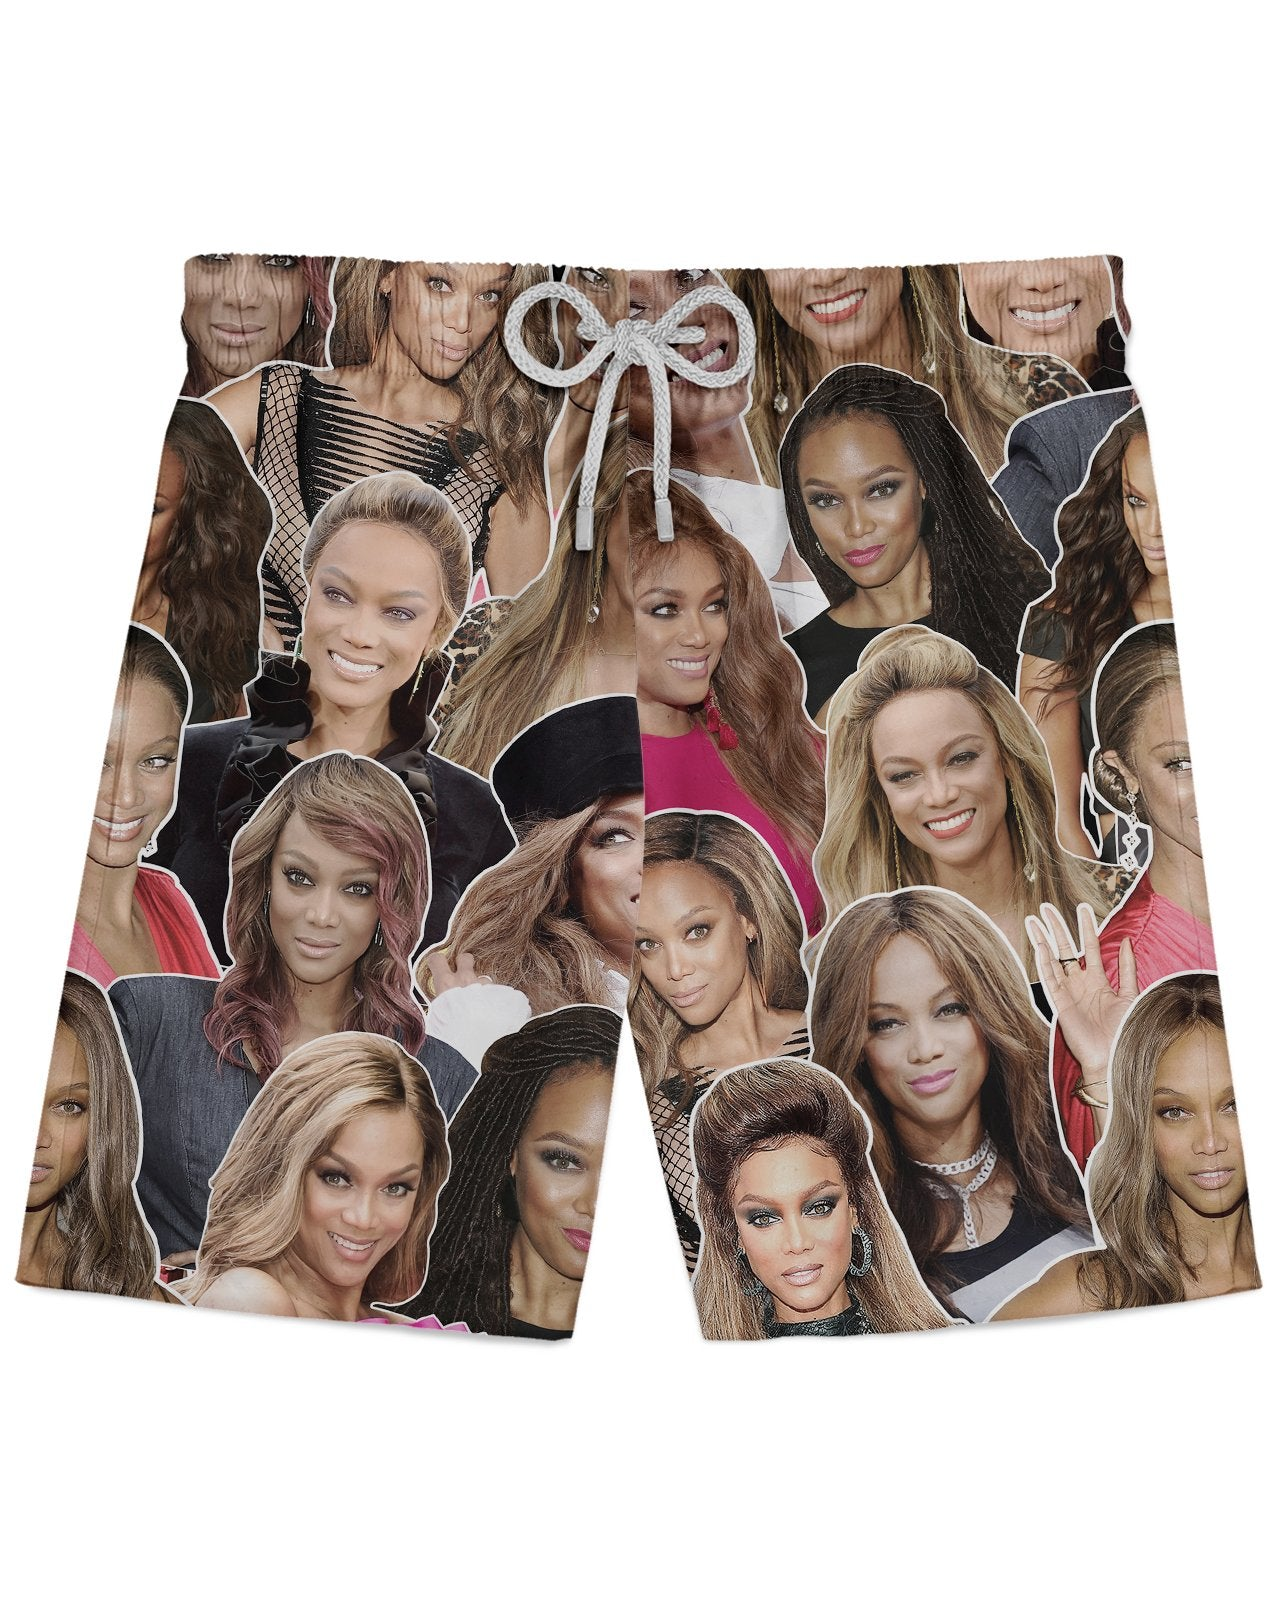 Tyra Banks printed all over in HD on premium fabric. Handmade in California.